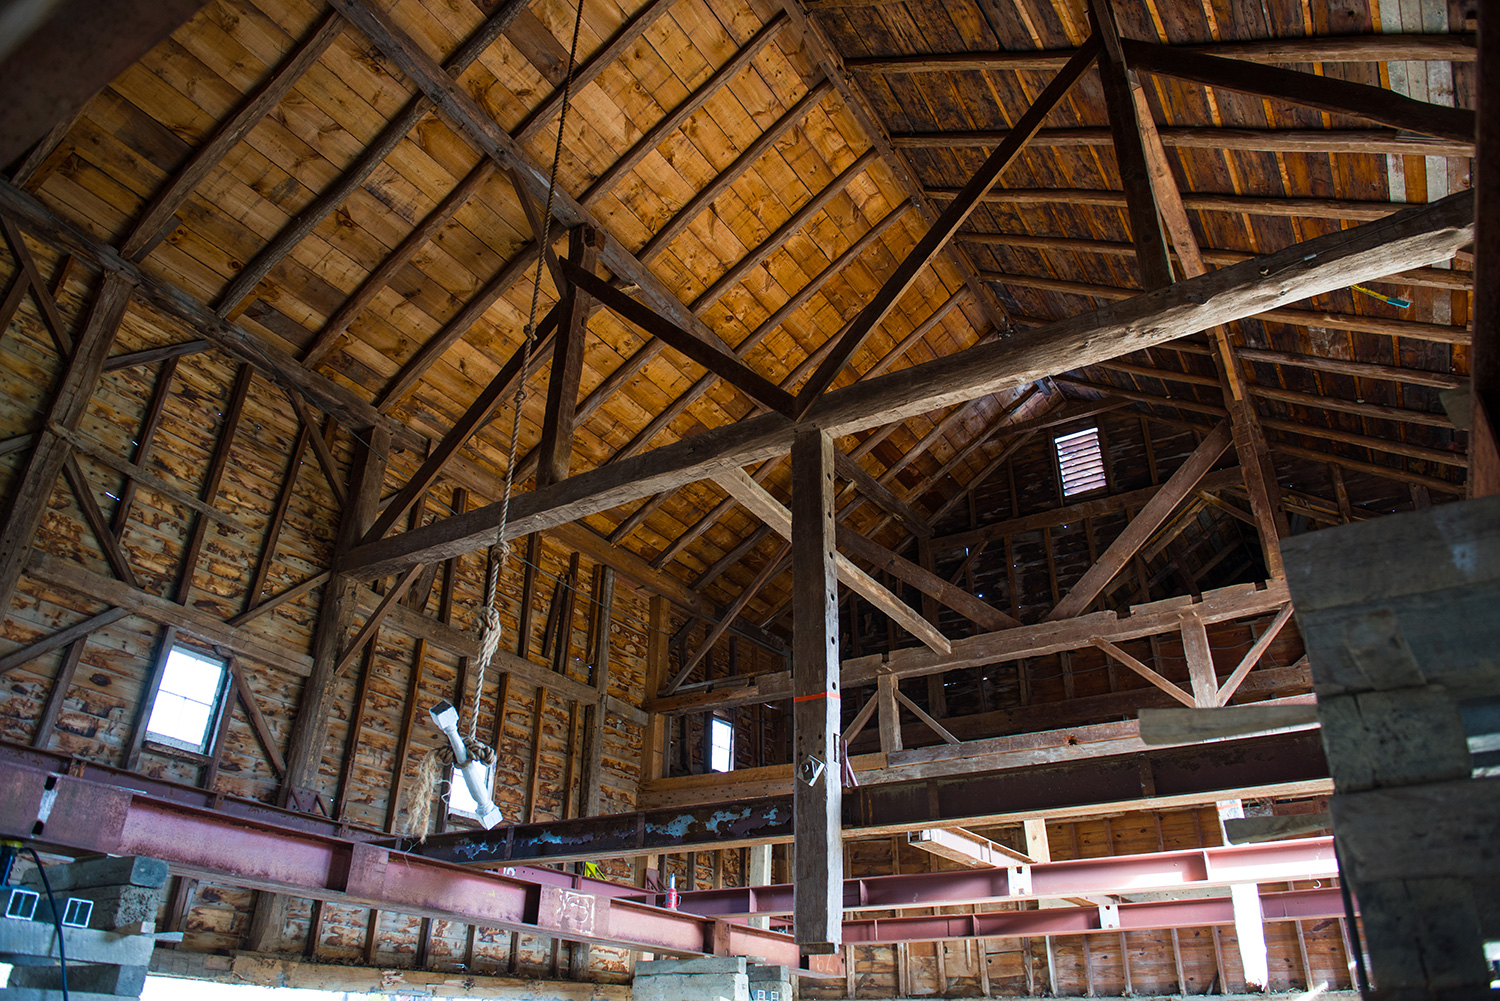 Interior of main barn historic restoration. Spencertown, NY.